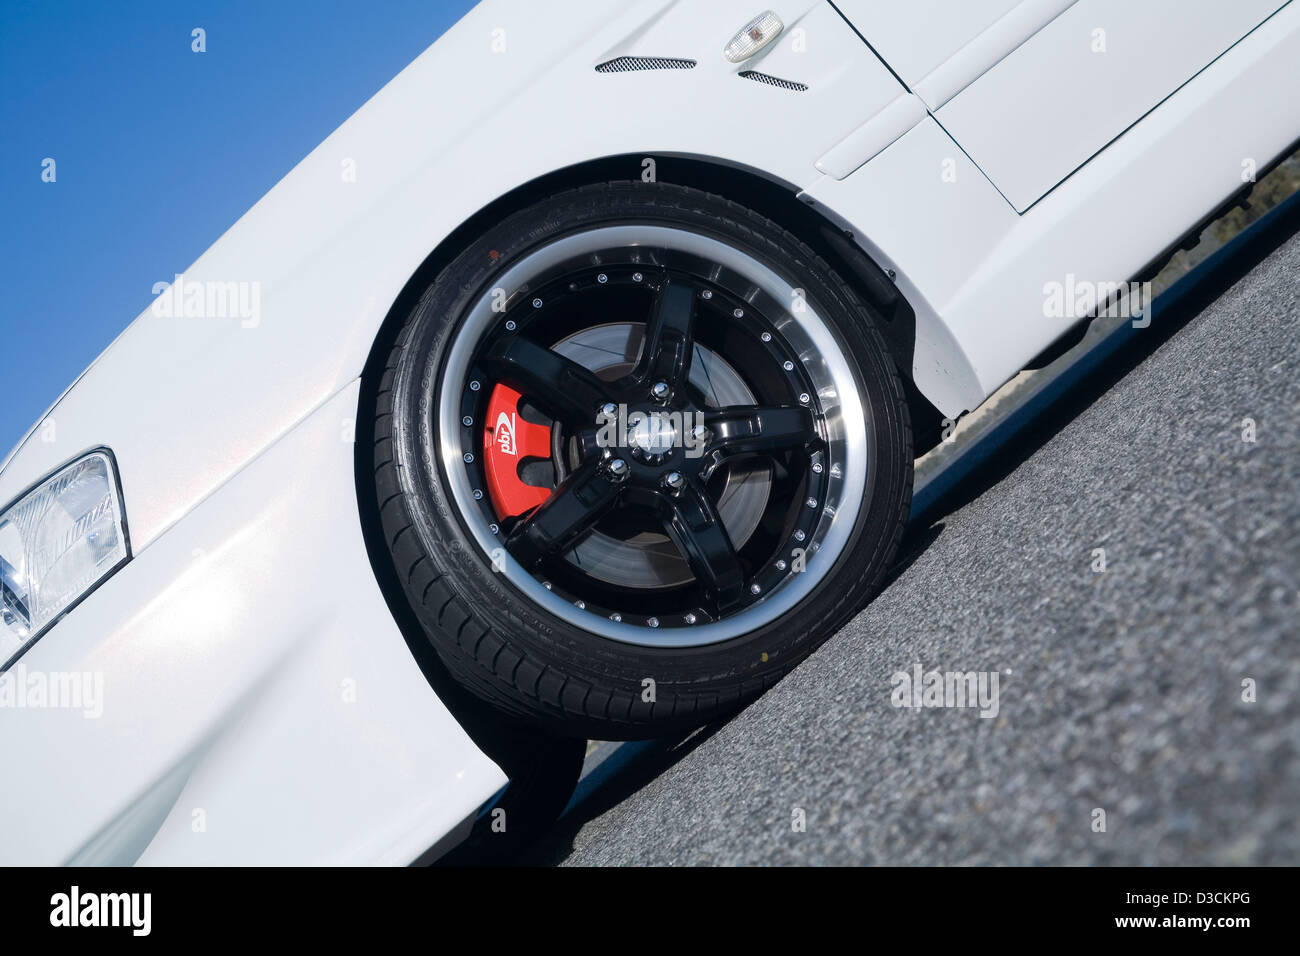 Alloy wheel and brake calliper on a modified custom car. - Stock Image